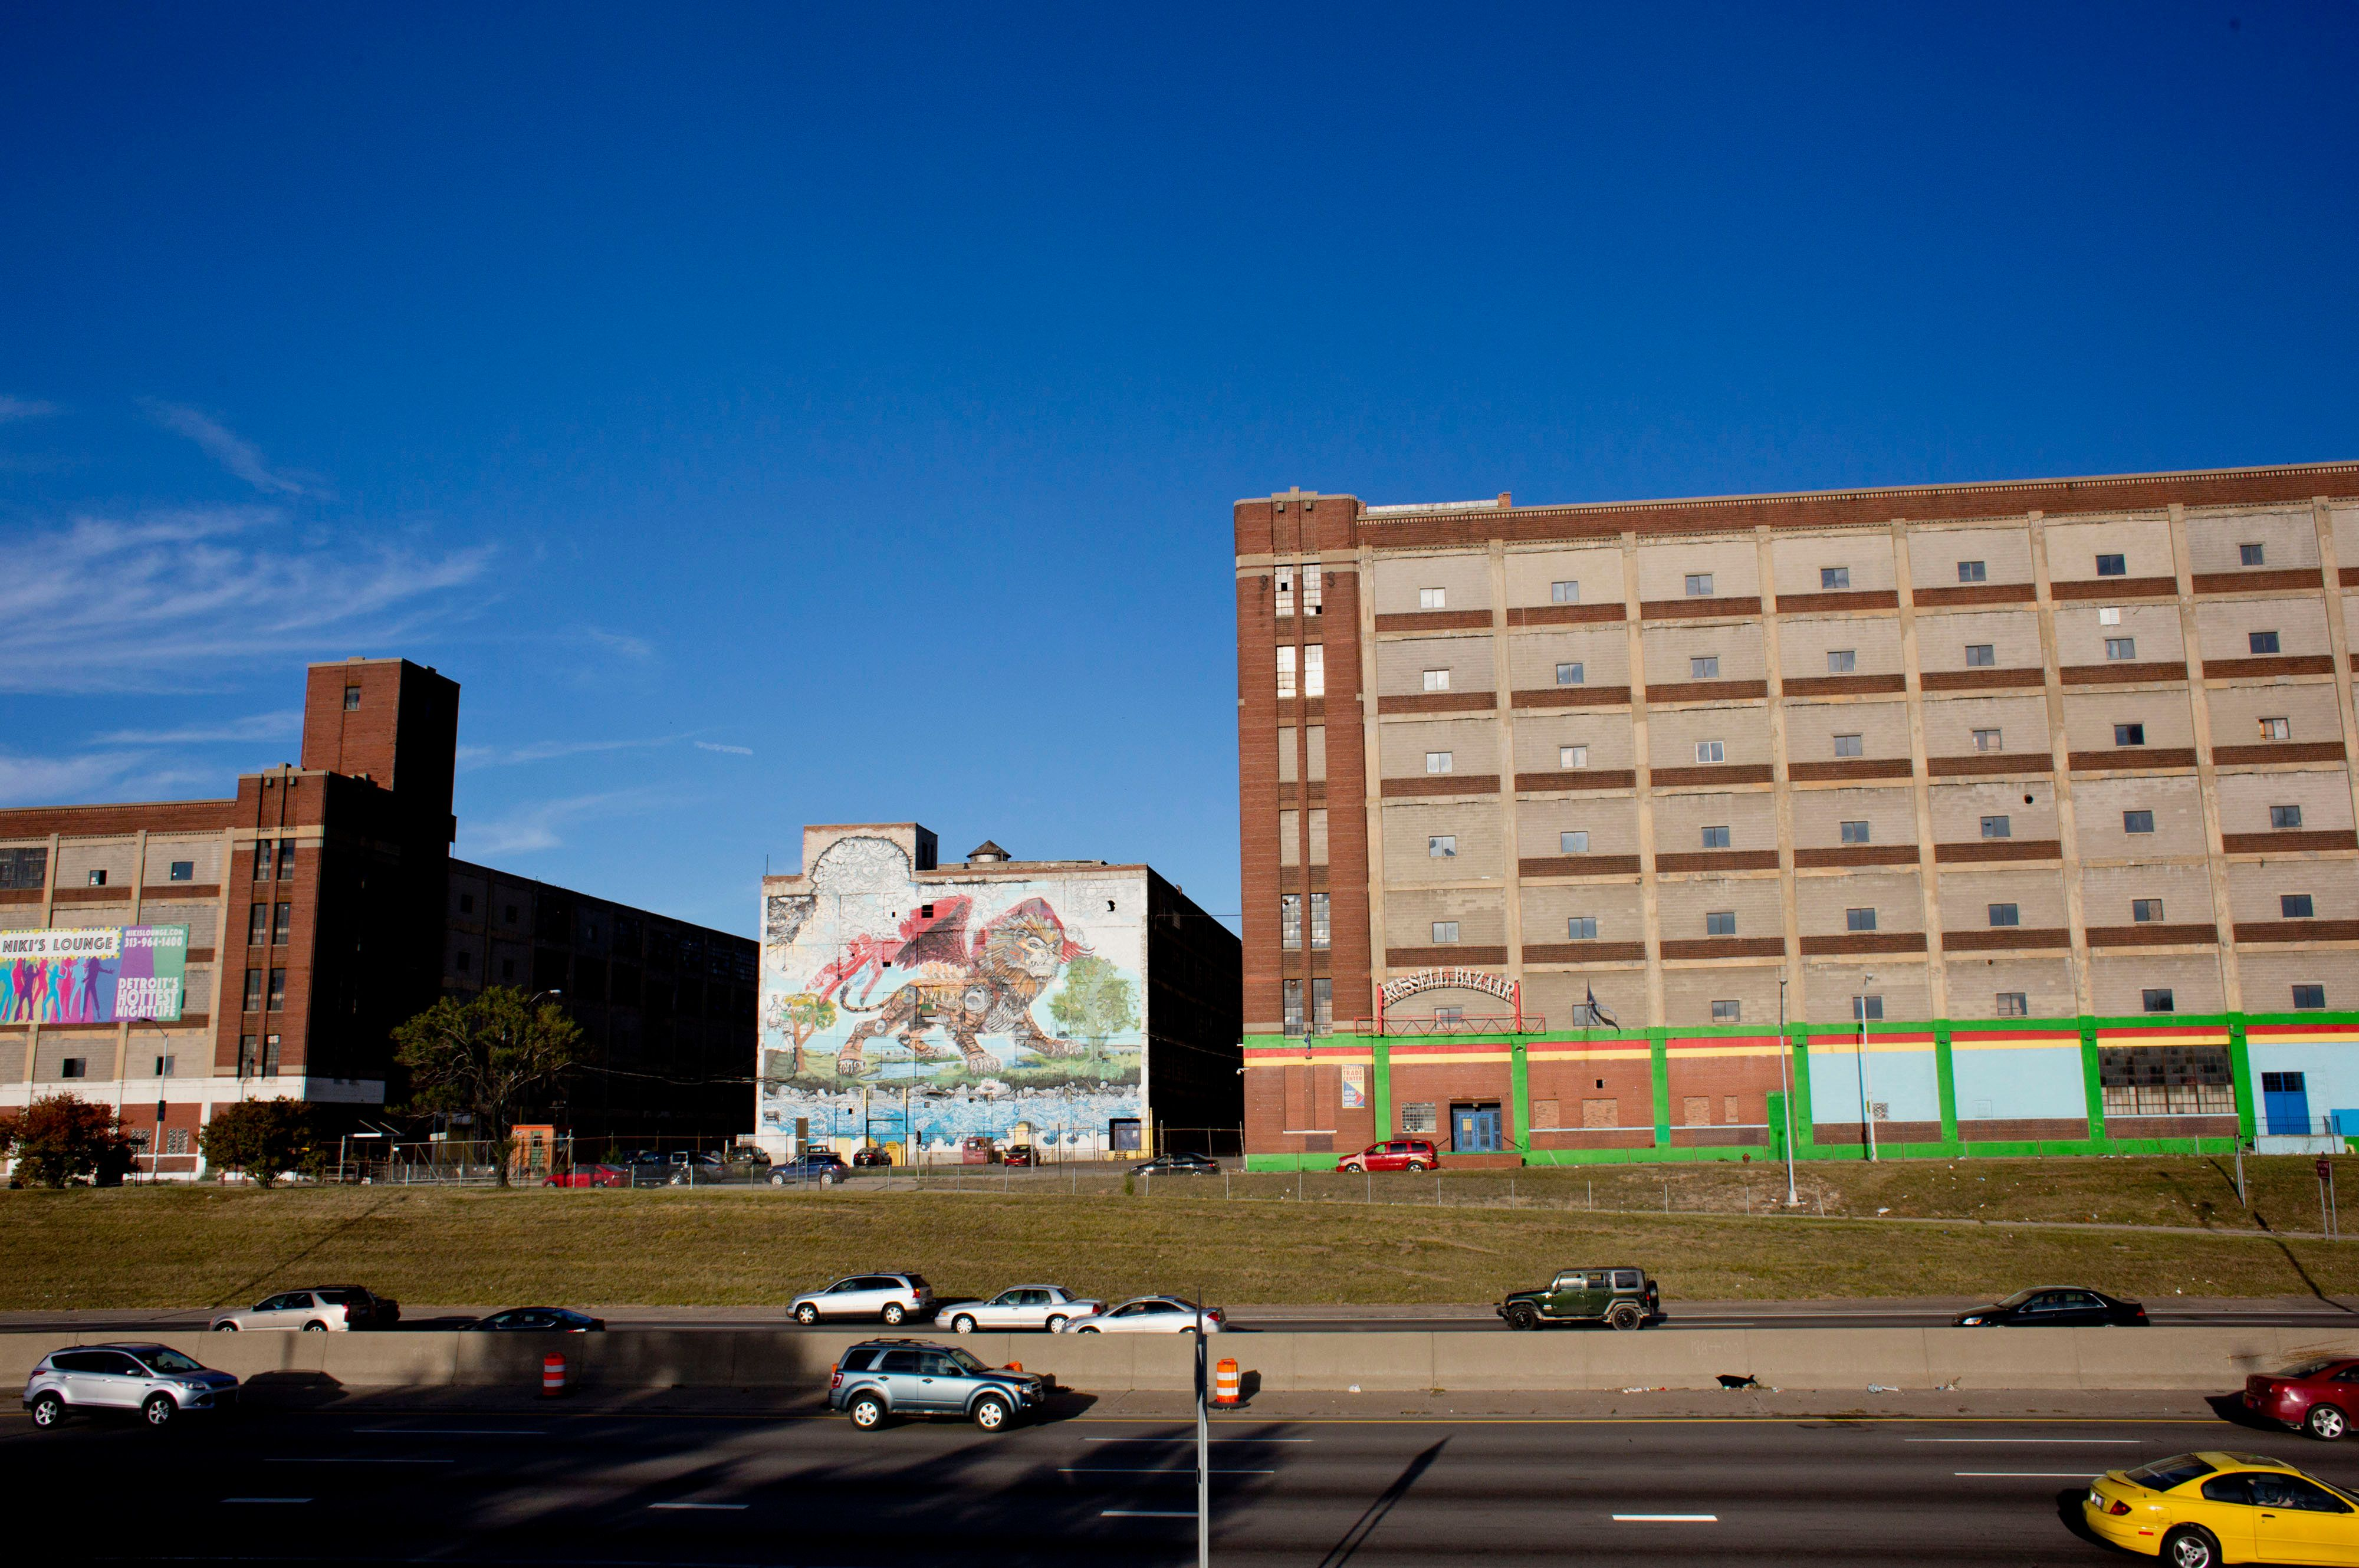 A mural of a lion by artist Kobie Solomon is seen on the side of the Russell Industrial Center as traffic moves along Interstate-75 in Detroit, Michigan, U.S., on Monday, Oct. 5, 2015. Ten months after emerging from a record $18 billion municipal bankruptcy, Detroit is functioning in ways unseen for months and even years -- street lights are on, parks get mowed, municipal debt is sold on the public market and the police are training civilians to manage traffic at clogged intersections. Photographer: Laura McDermott/Bloomberg via Getty Images